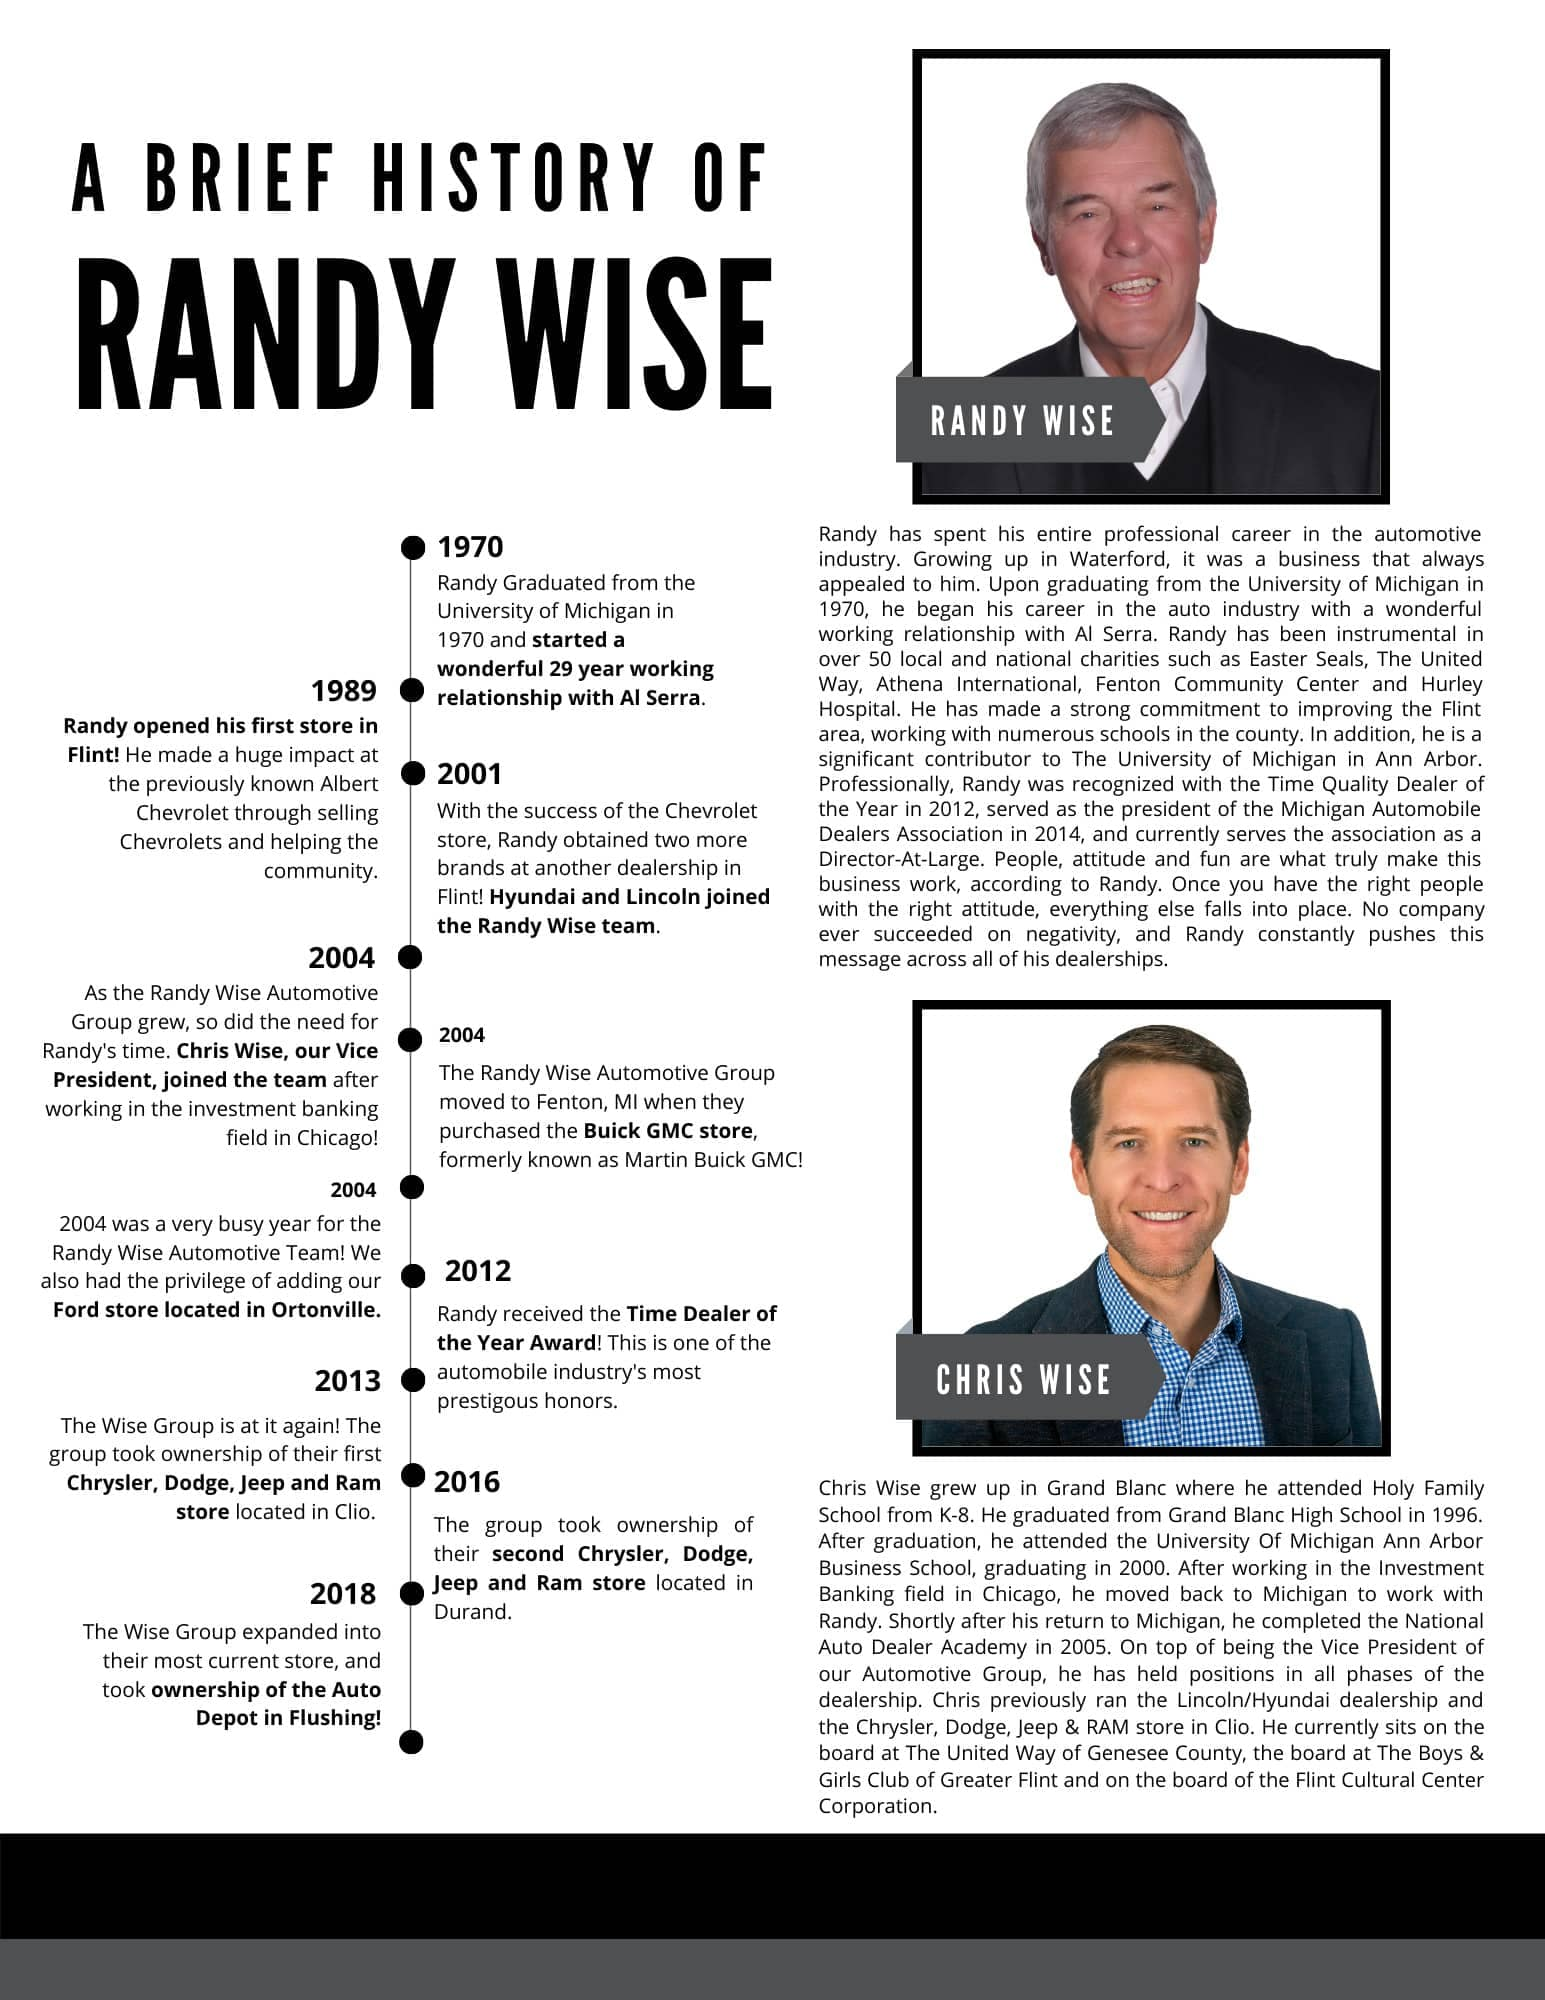 History of Randy Wise